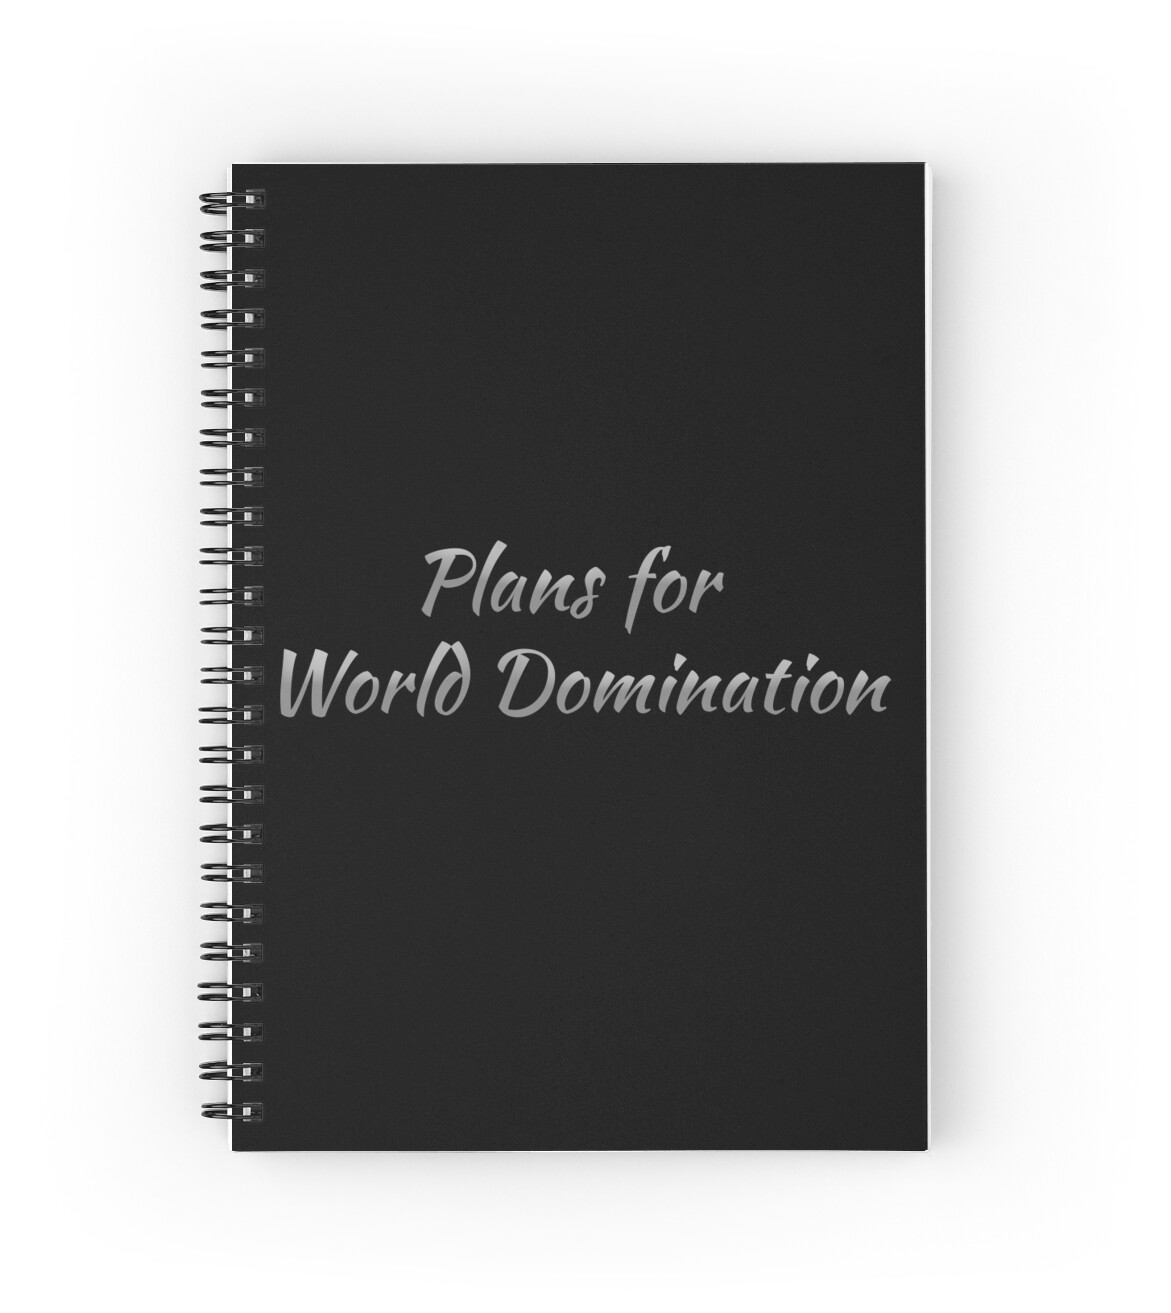 World Domination Plans 19